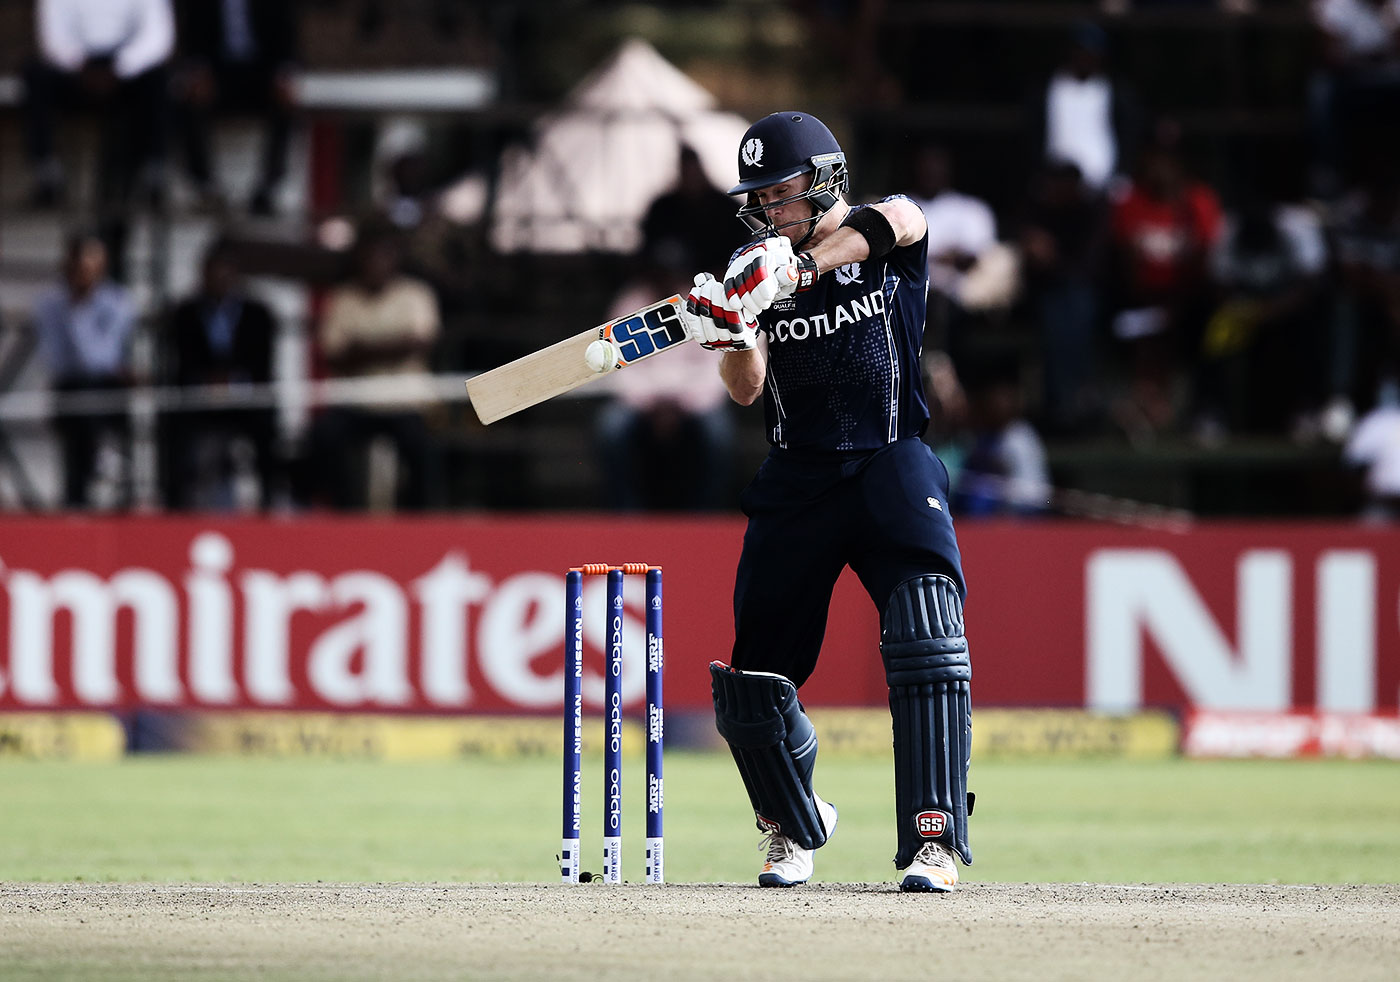 If the 2018 World Cup Qualifiers had had the DRS, it could have been Scotland playing the main event a year later instead of West Indies